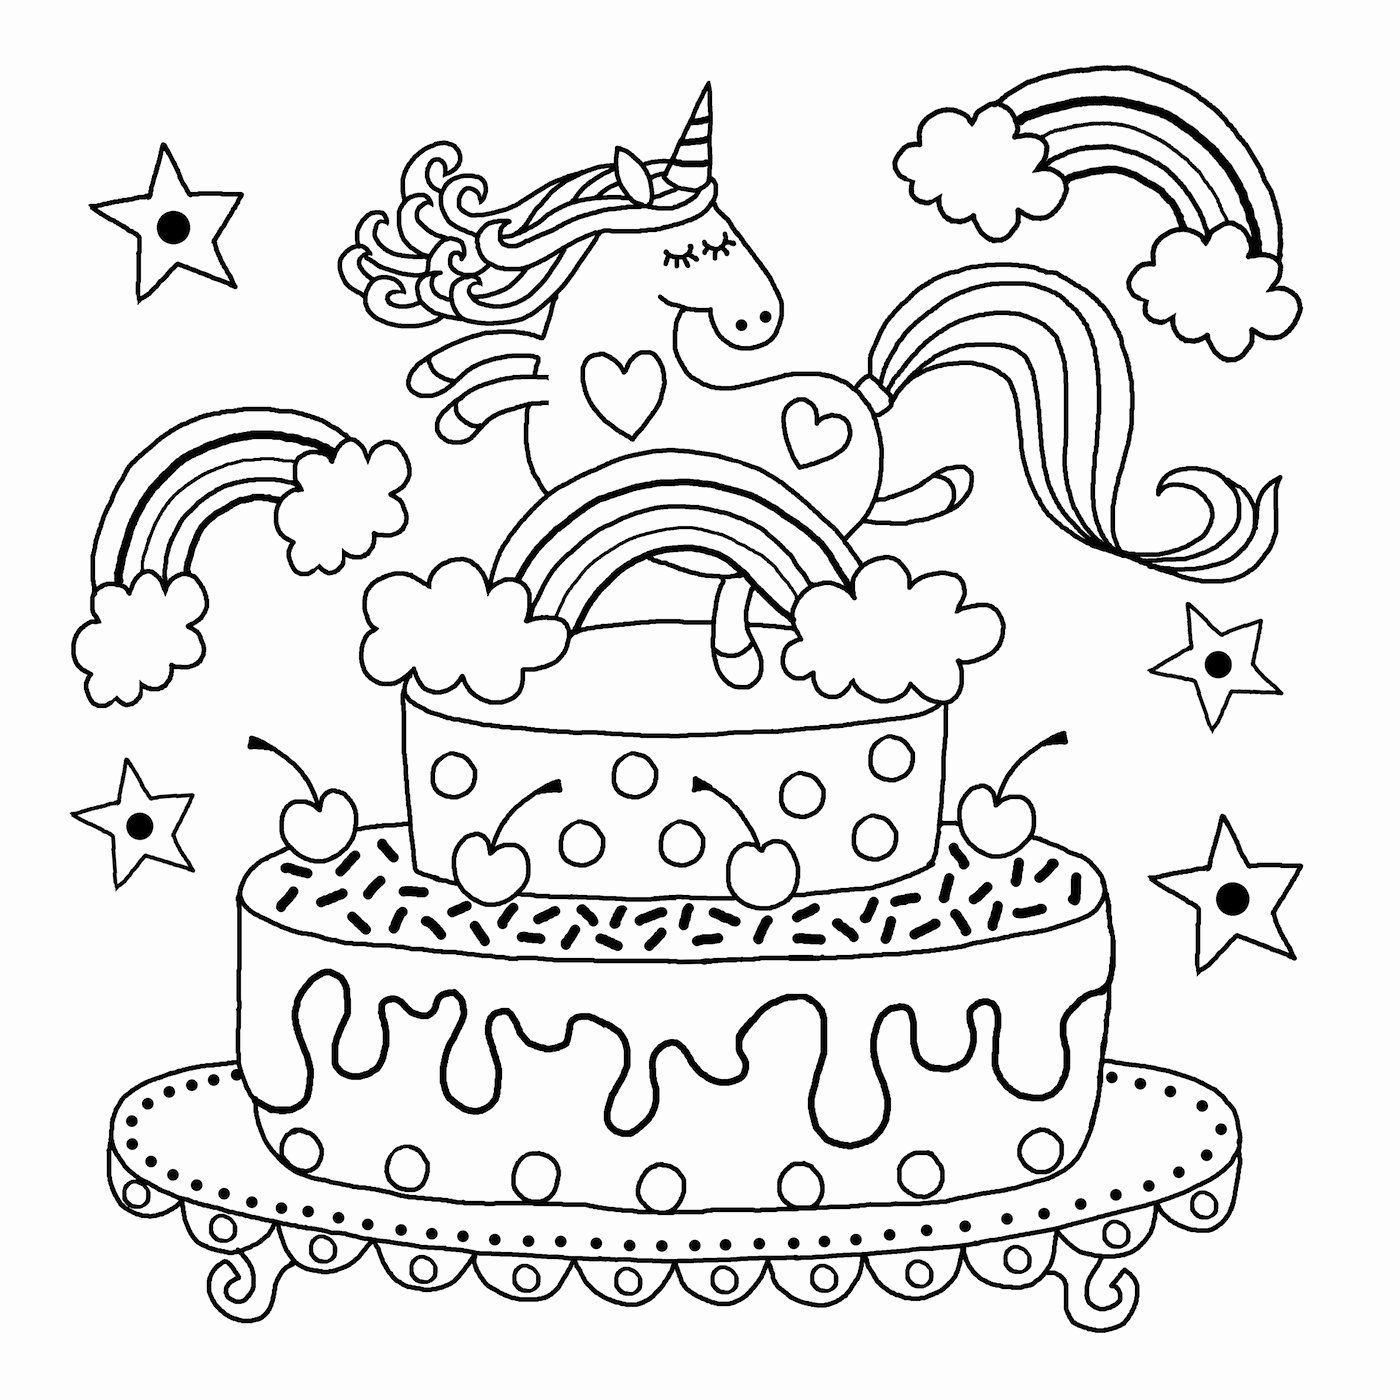 Cute Unicorn Coloring Pages Printable Lovely Downloadable Unicorn Colouring Page Michae Unicorn Coloring Pages Birthday Coloring Pages Coloring Pages For Girls